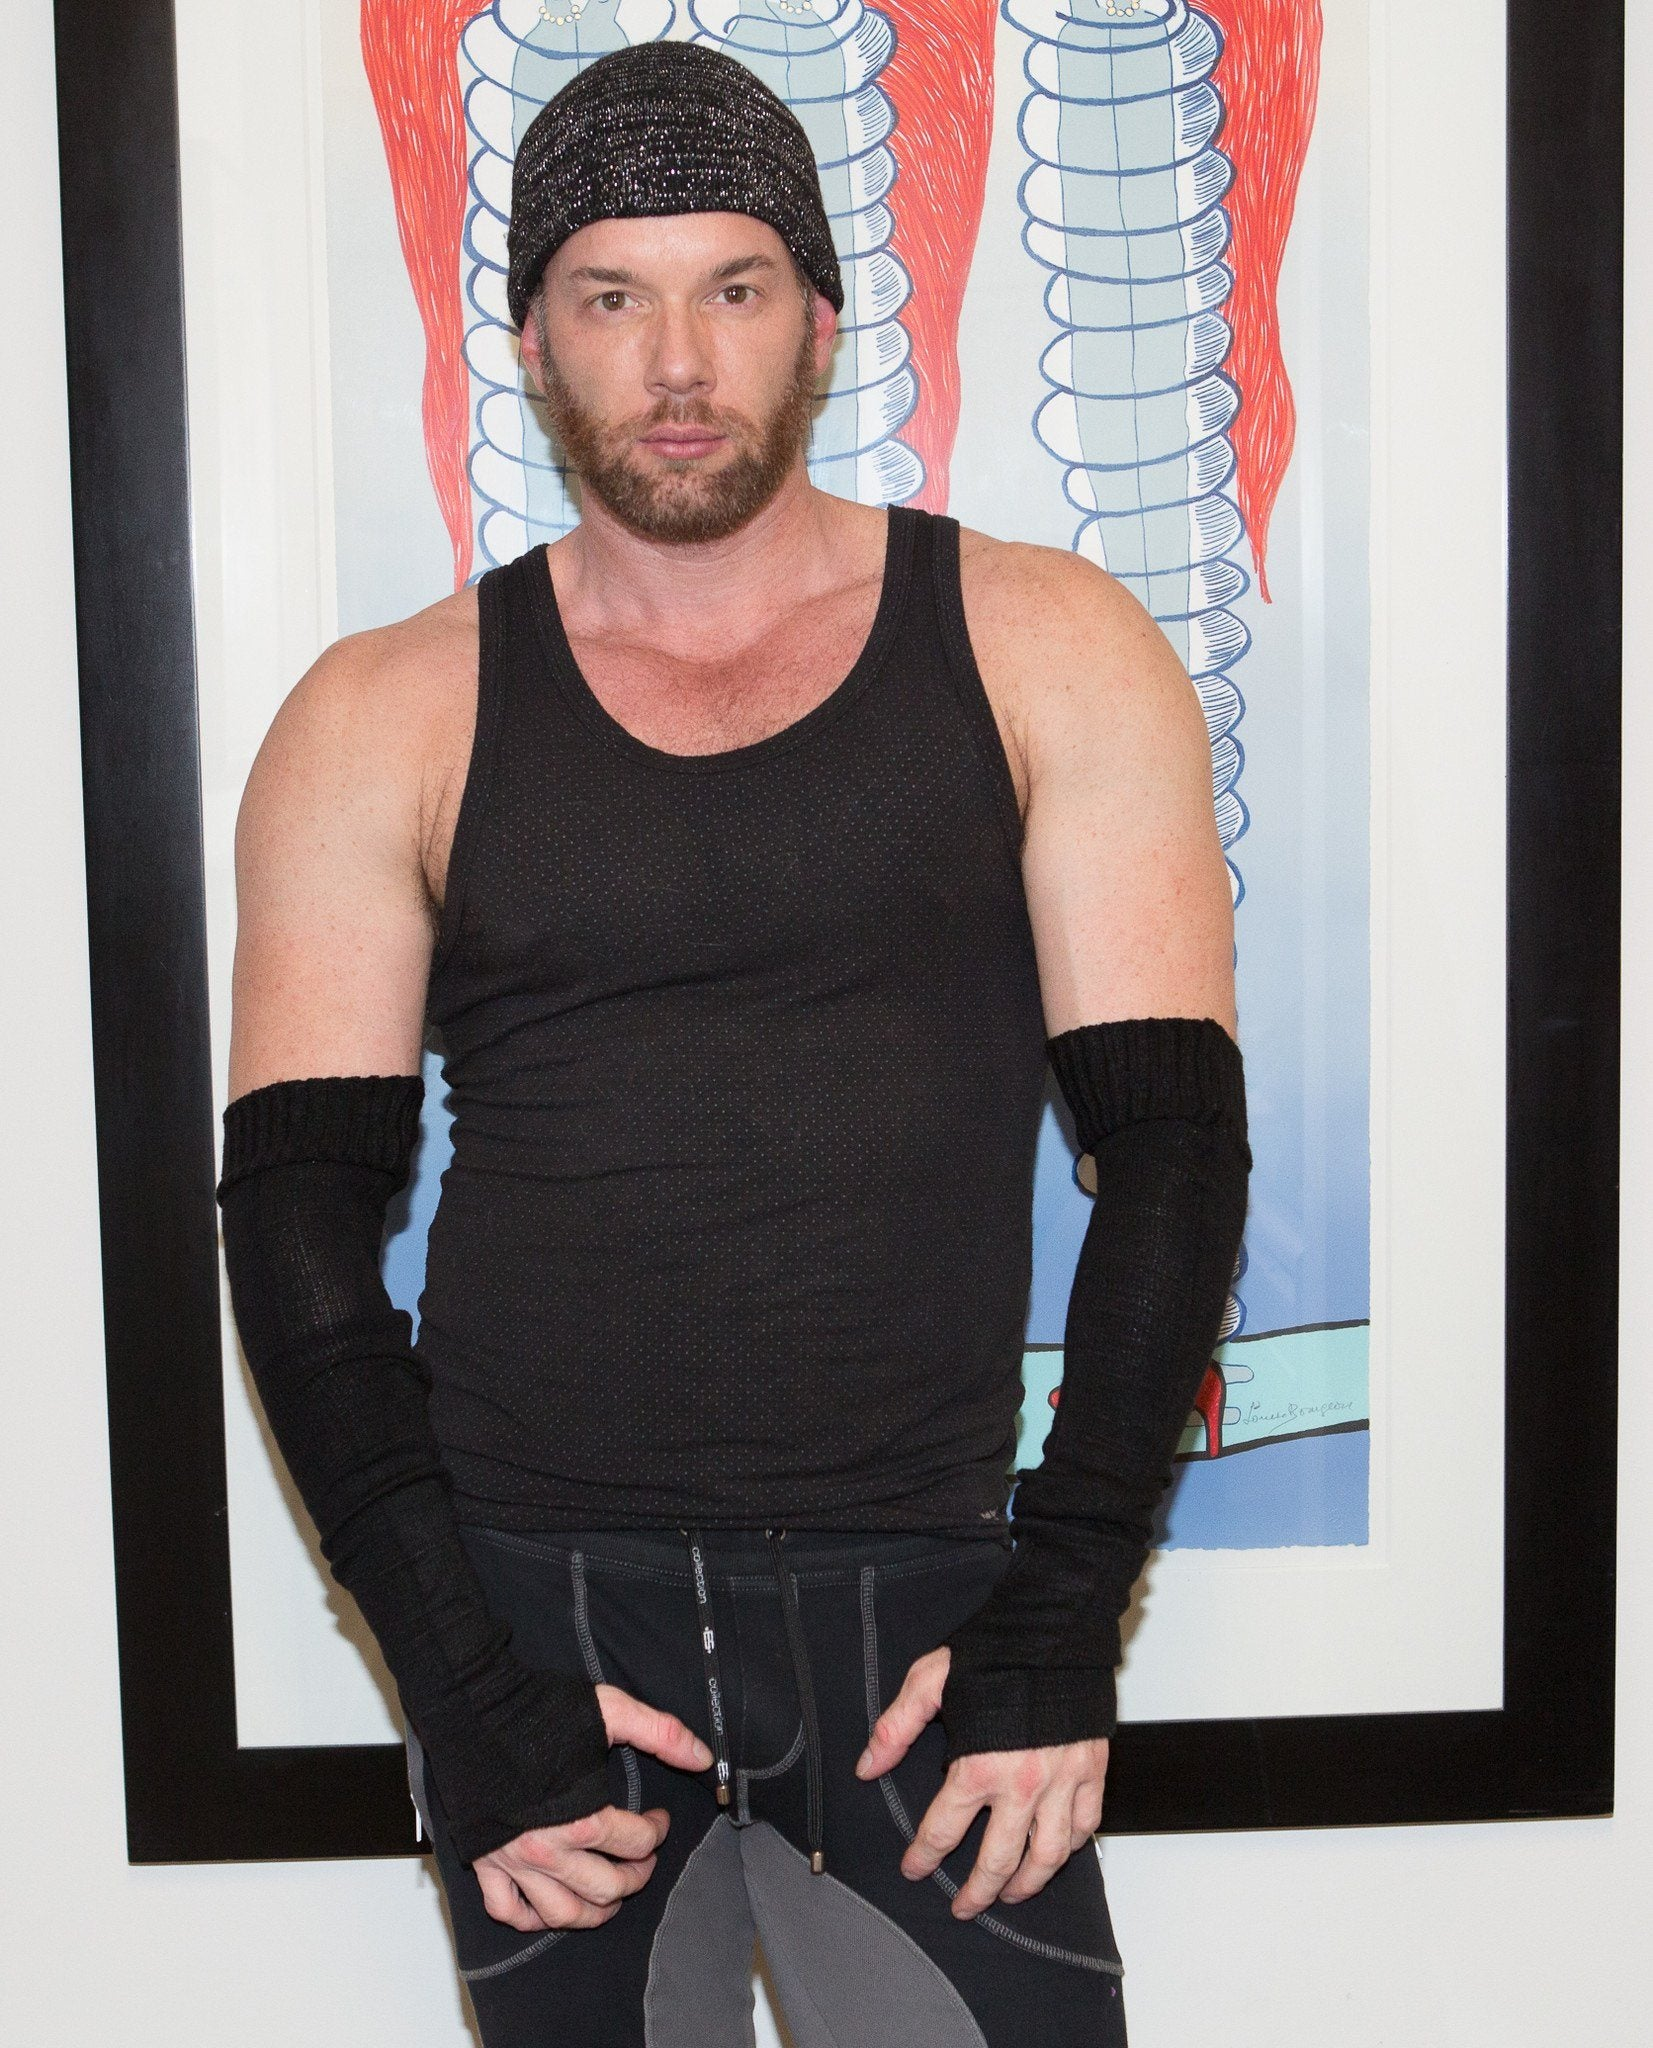 Men's Arm Warmers / Stretch Knit / Thumb Hole @KDdanceNewYork #MadeInUSA - 4